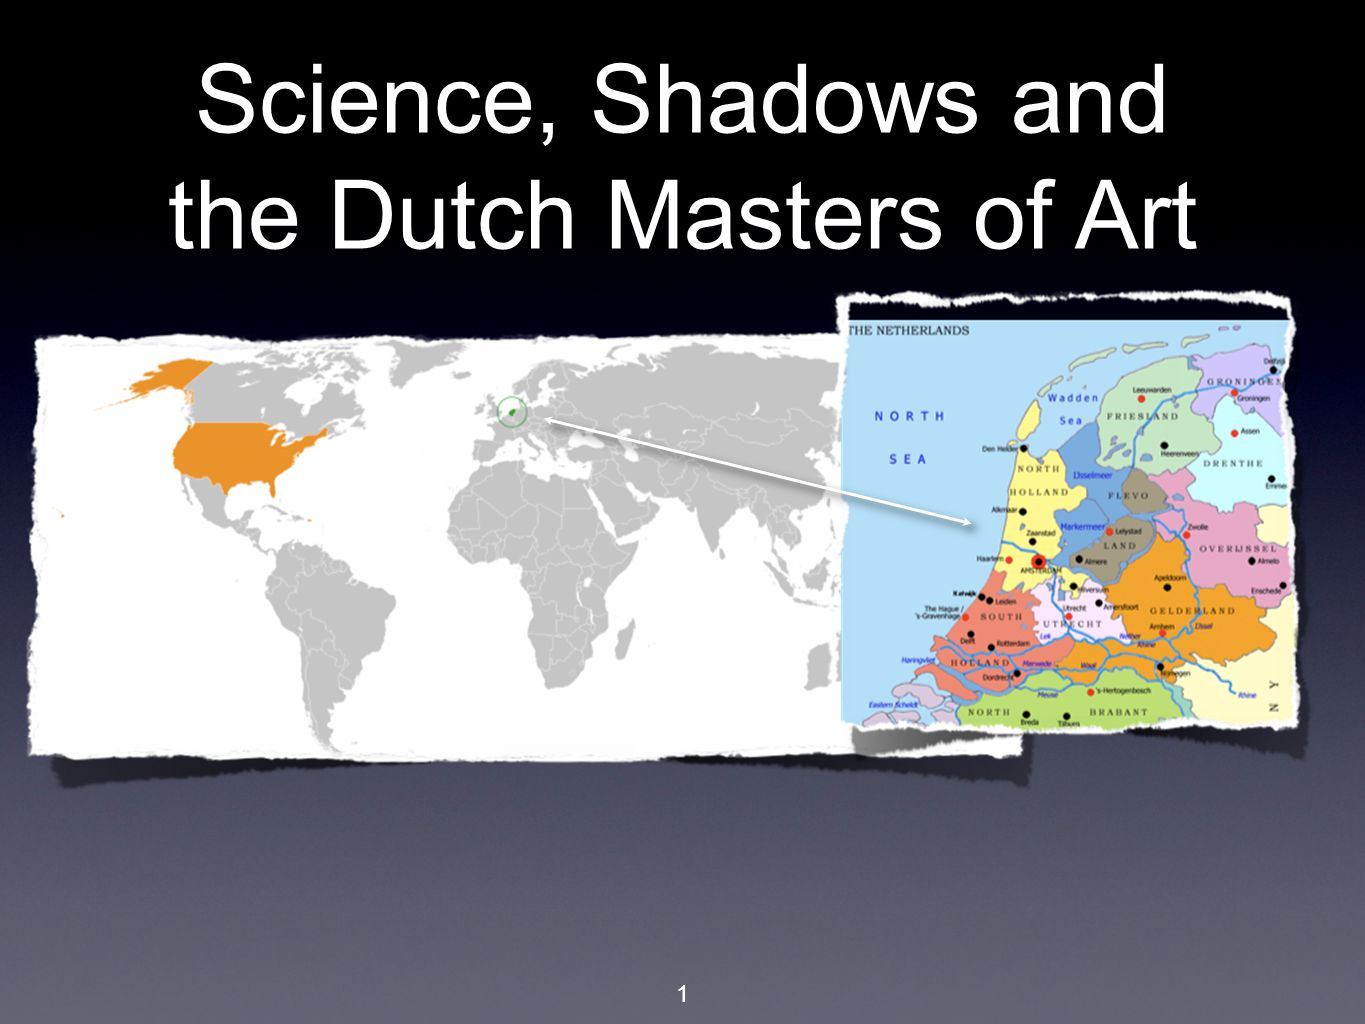 1 Science, Shadows and the Dutch Masters of Art